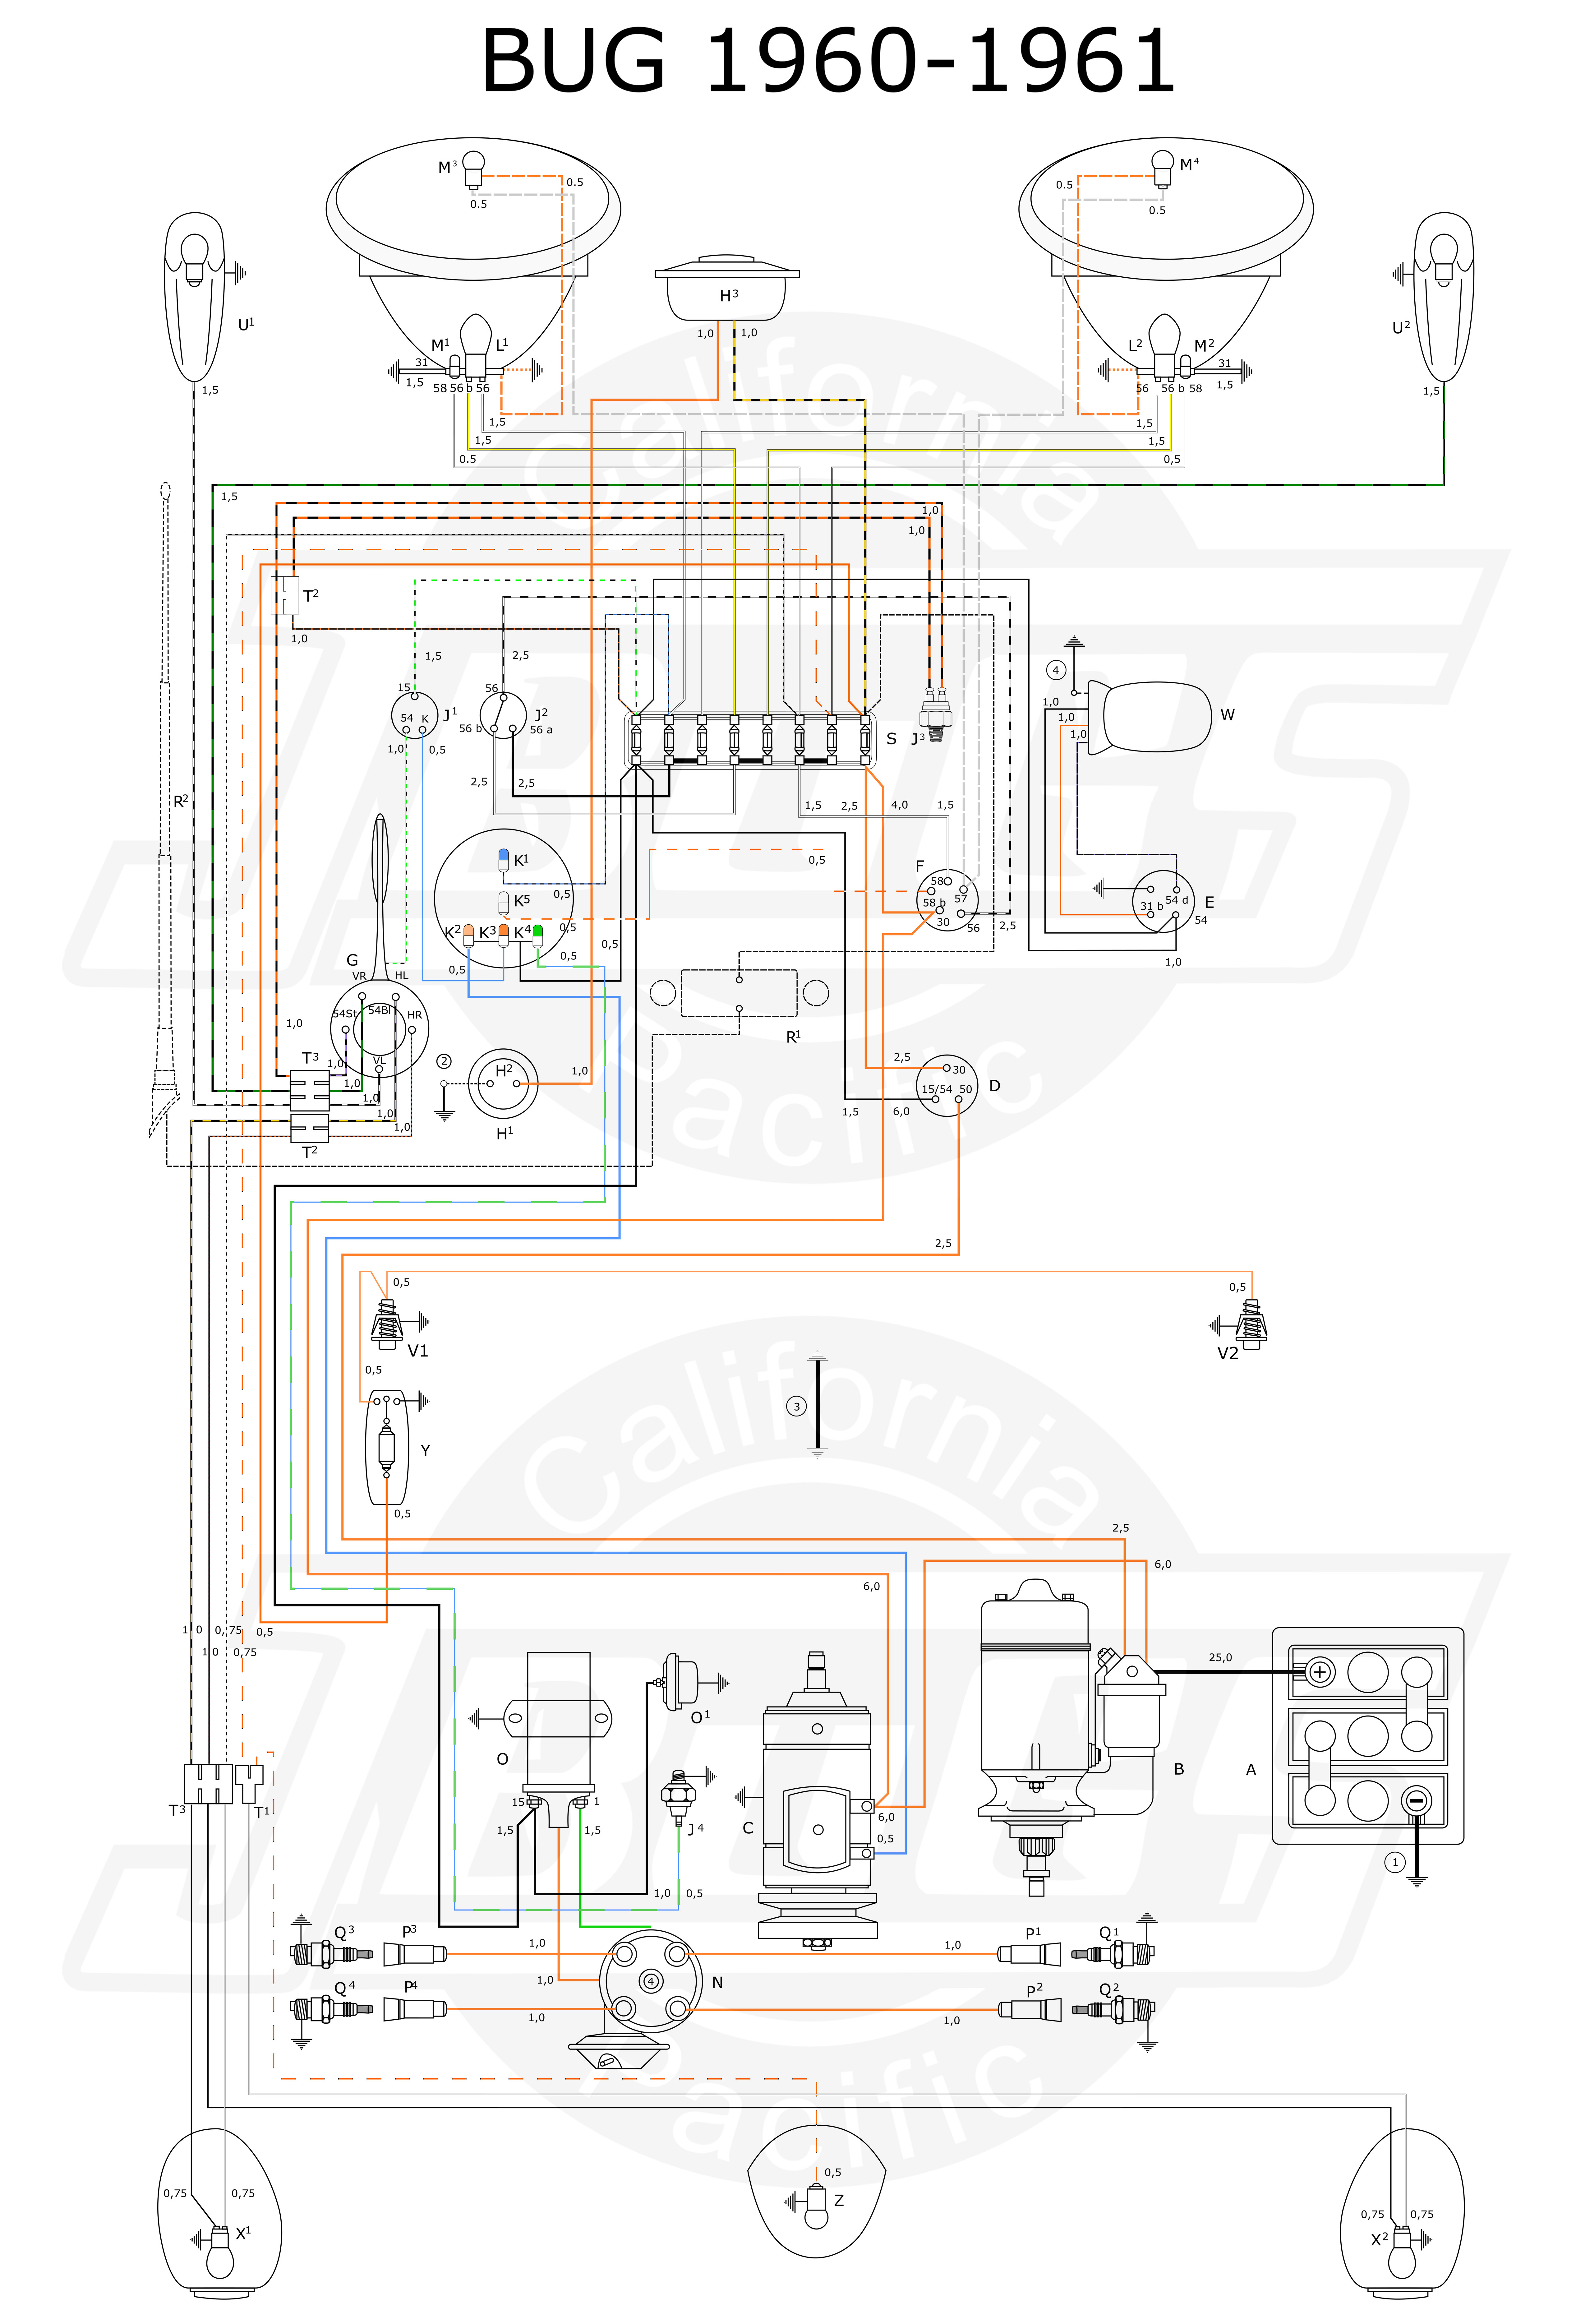 VW Bug 1960 61 Wiring Diagram vw tech article 1960 61 wiring diagram 1965 vw beetle wiring diagram at nearapp.co